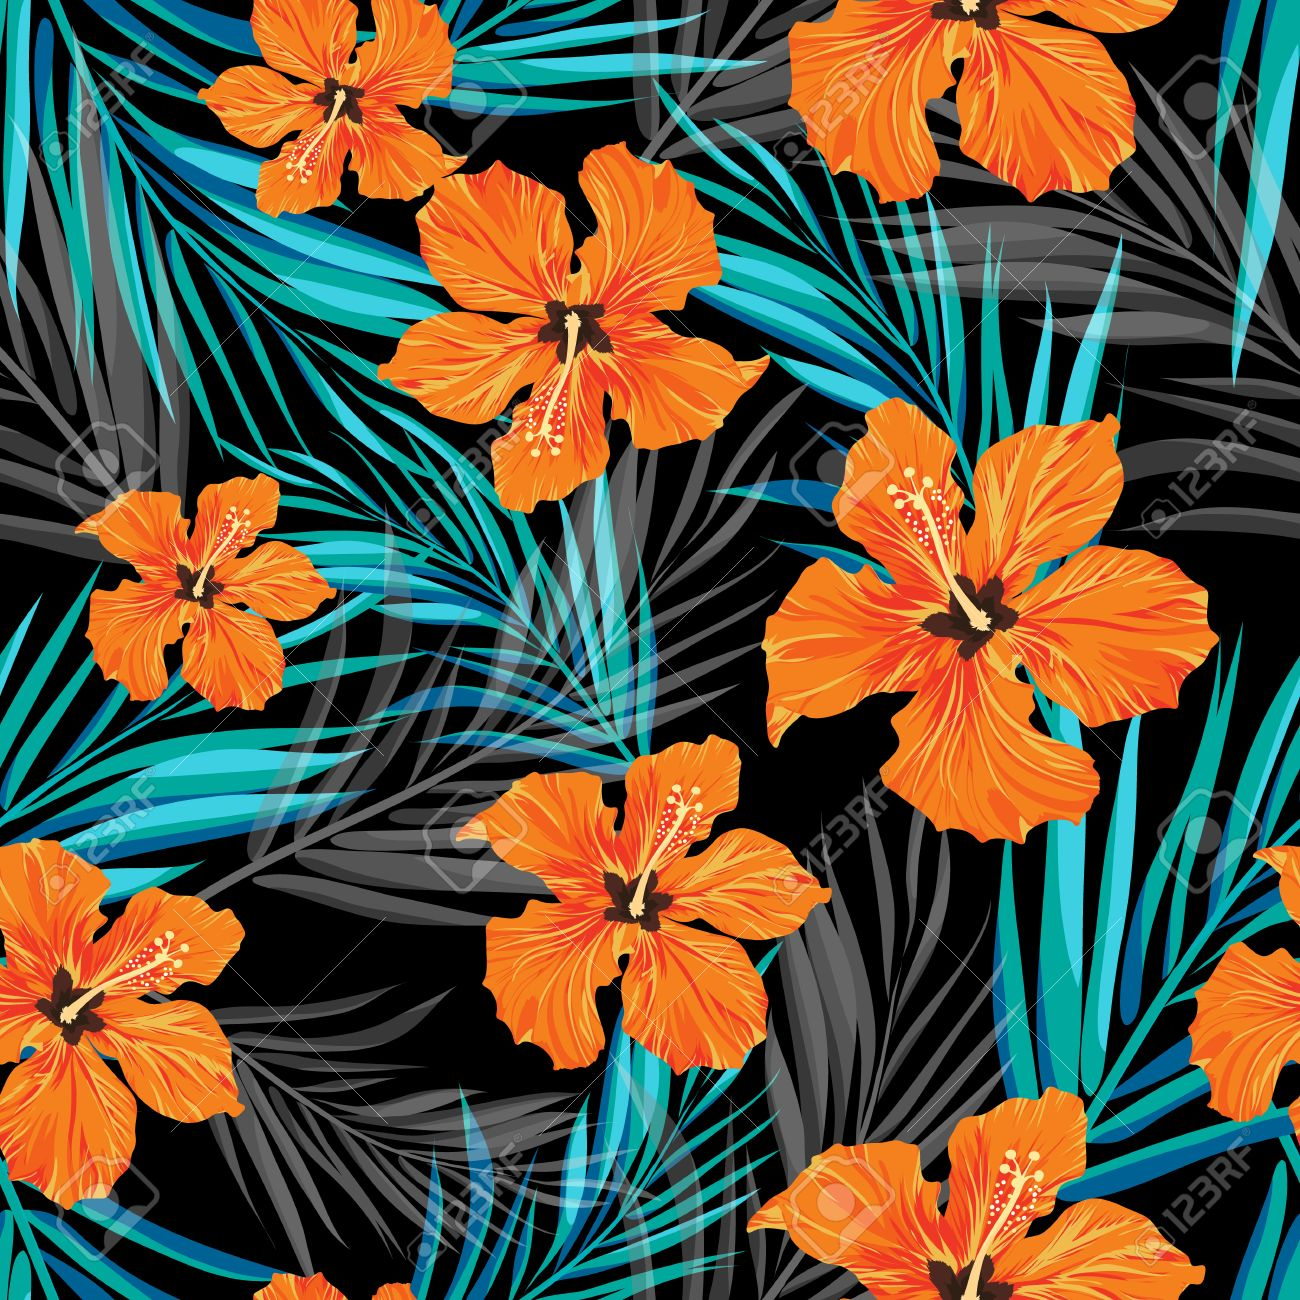 Summer tropical hawaiian sale background with palm tree leaves and exotic flowers, space for text, vector illustration. - 57181884